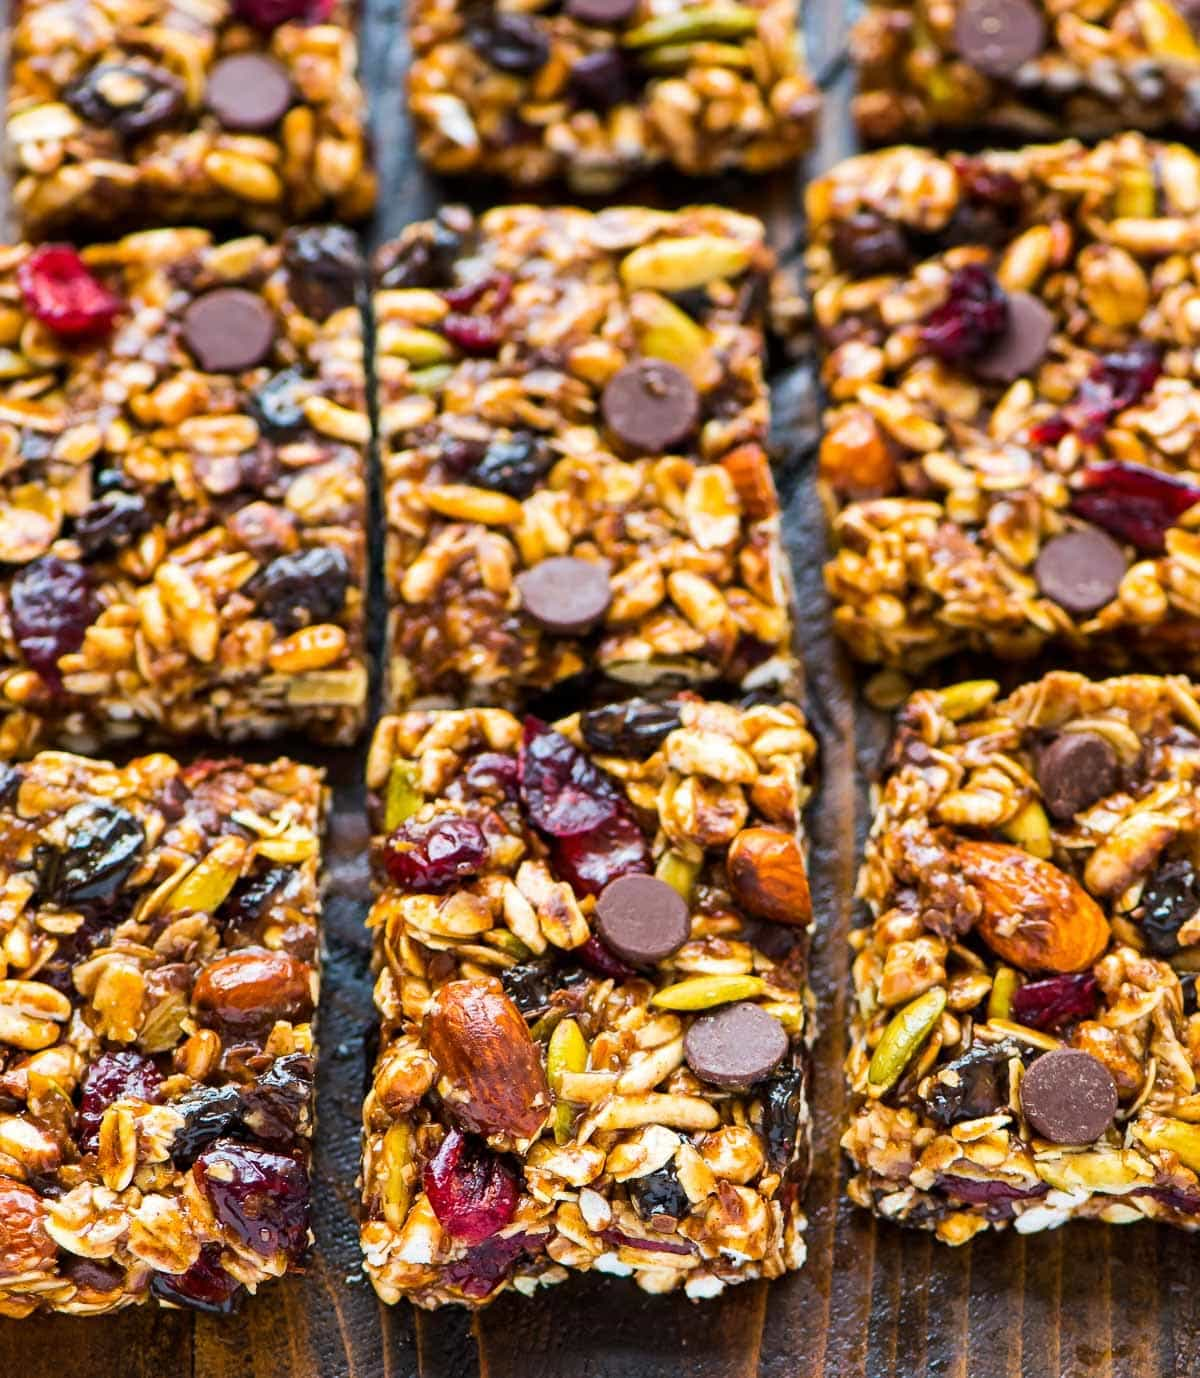 Healthy No Bake Peanut Butter Granola Bars. Made with chocolate chips, oatmeal, honey, and all of your favorite mix-ins. Recipe at wellplated.com | @wellplated